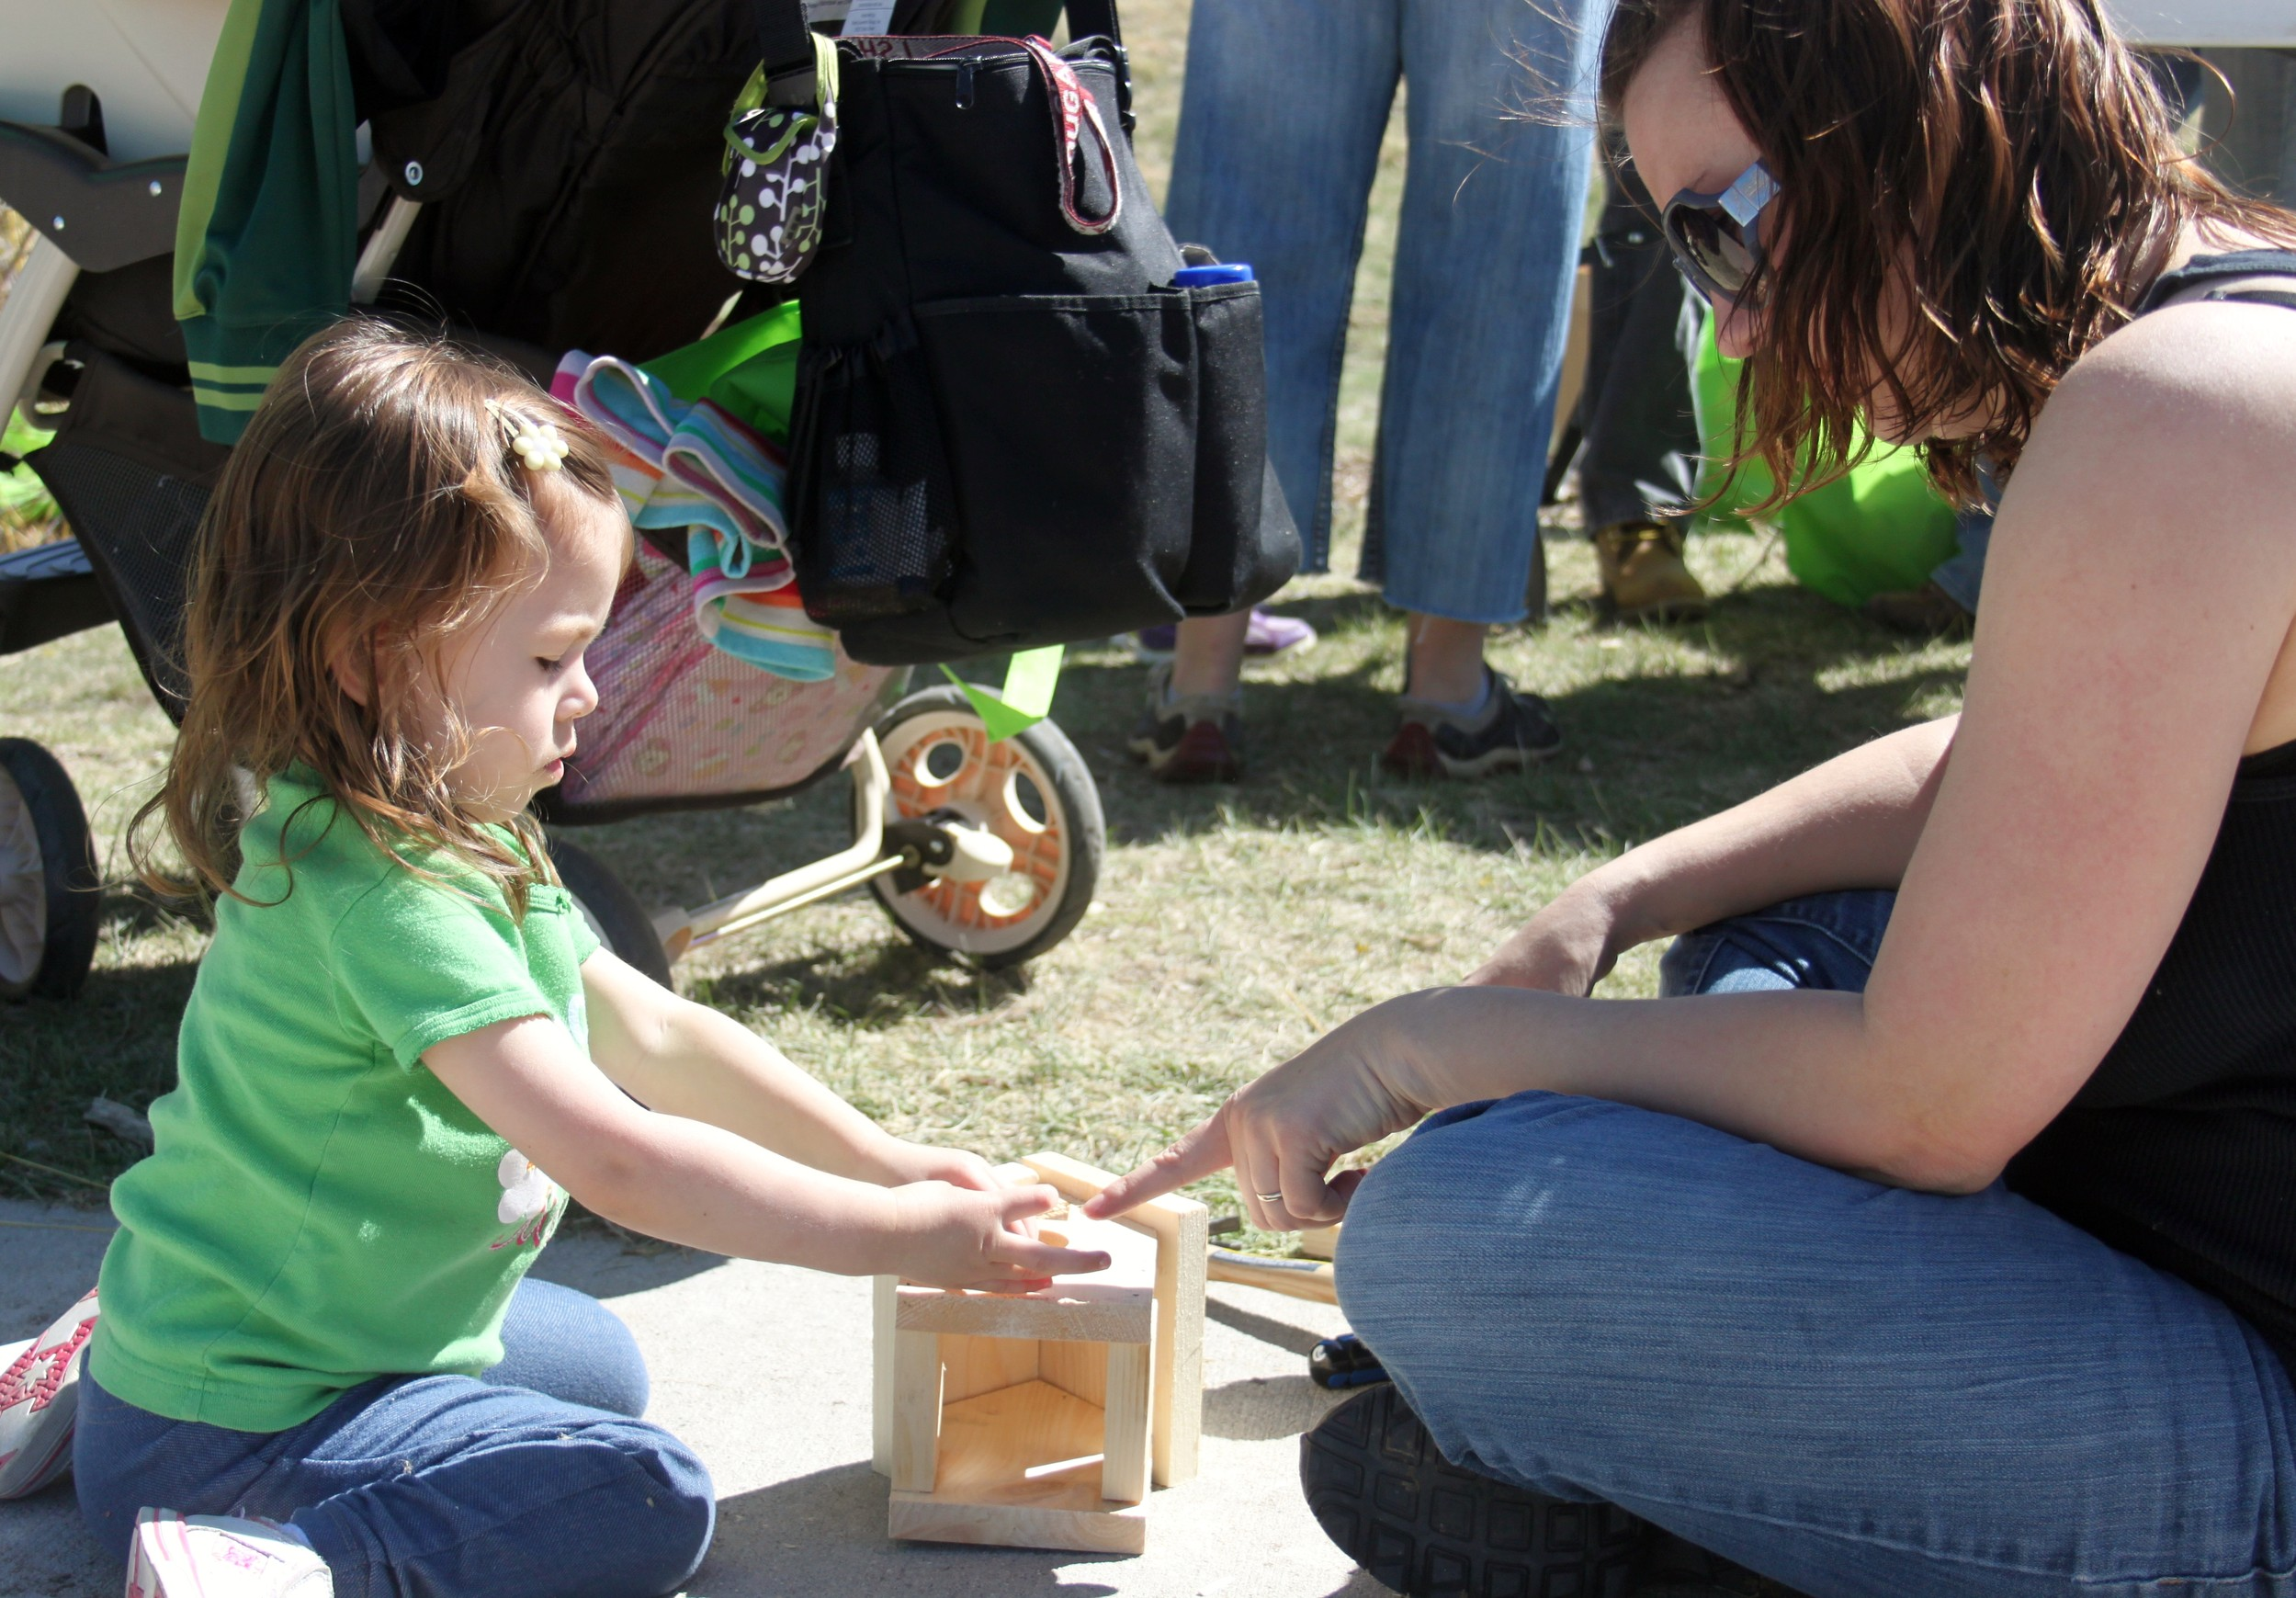 Cloe Kamen, 3, of Parker, helps her mom, Lynsey, assemble a birdhouse during the town's Arbor Day celebration April 26 at Tallman Meadow Park.